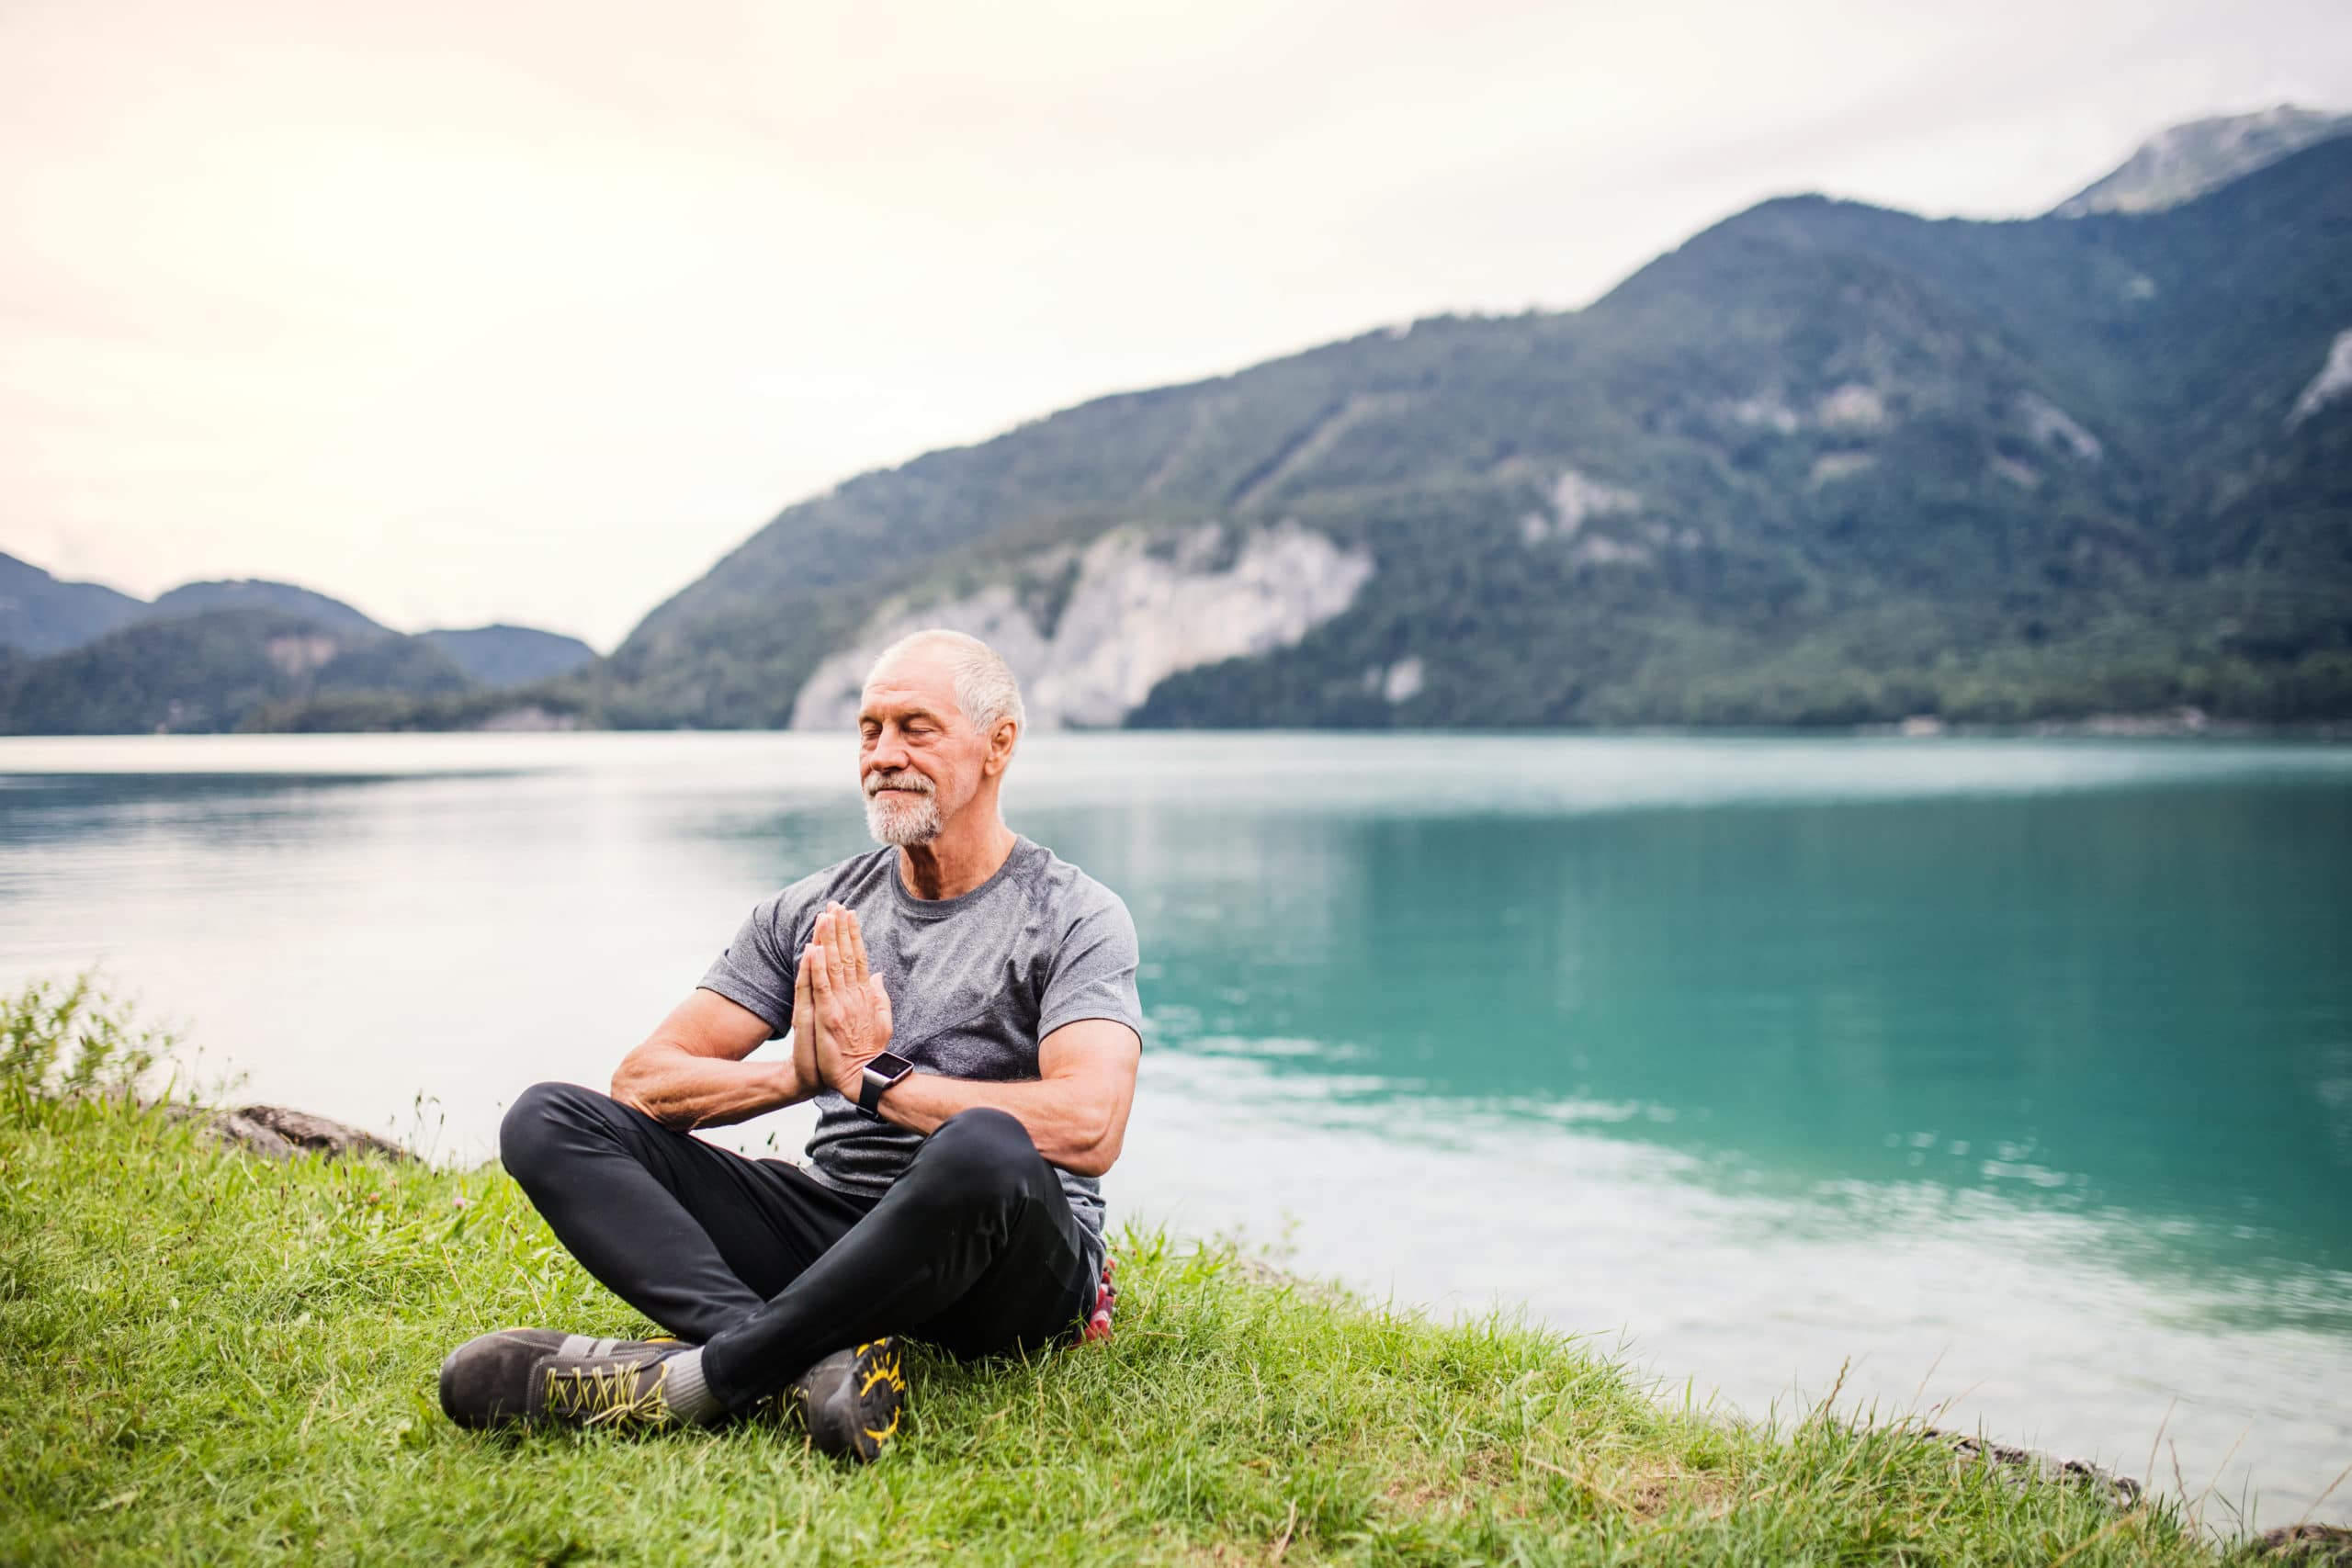 aged man feeling healthy sitting near a lake